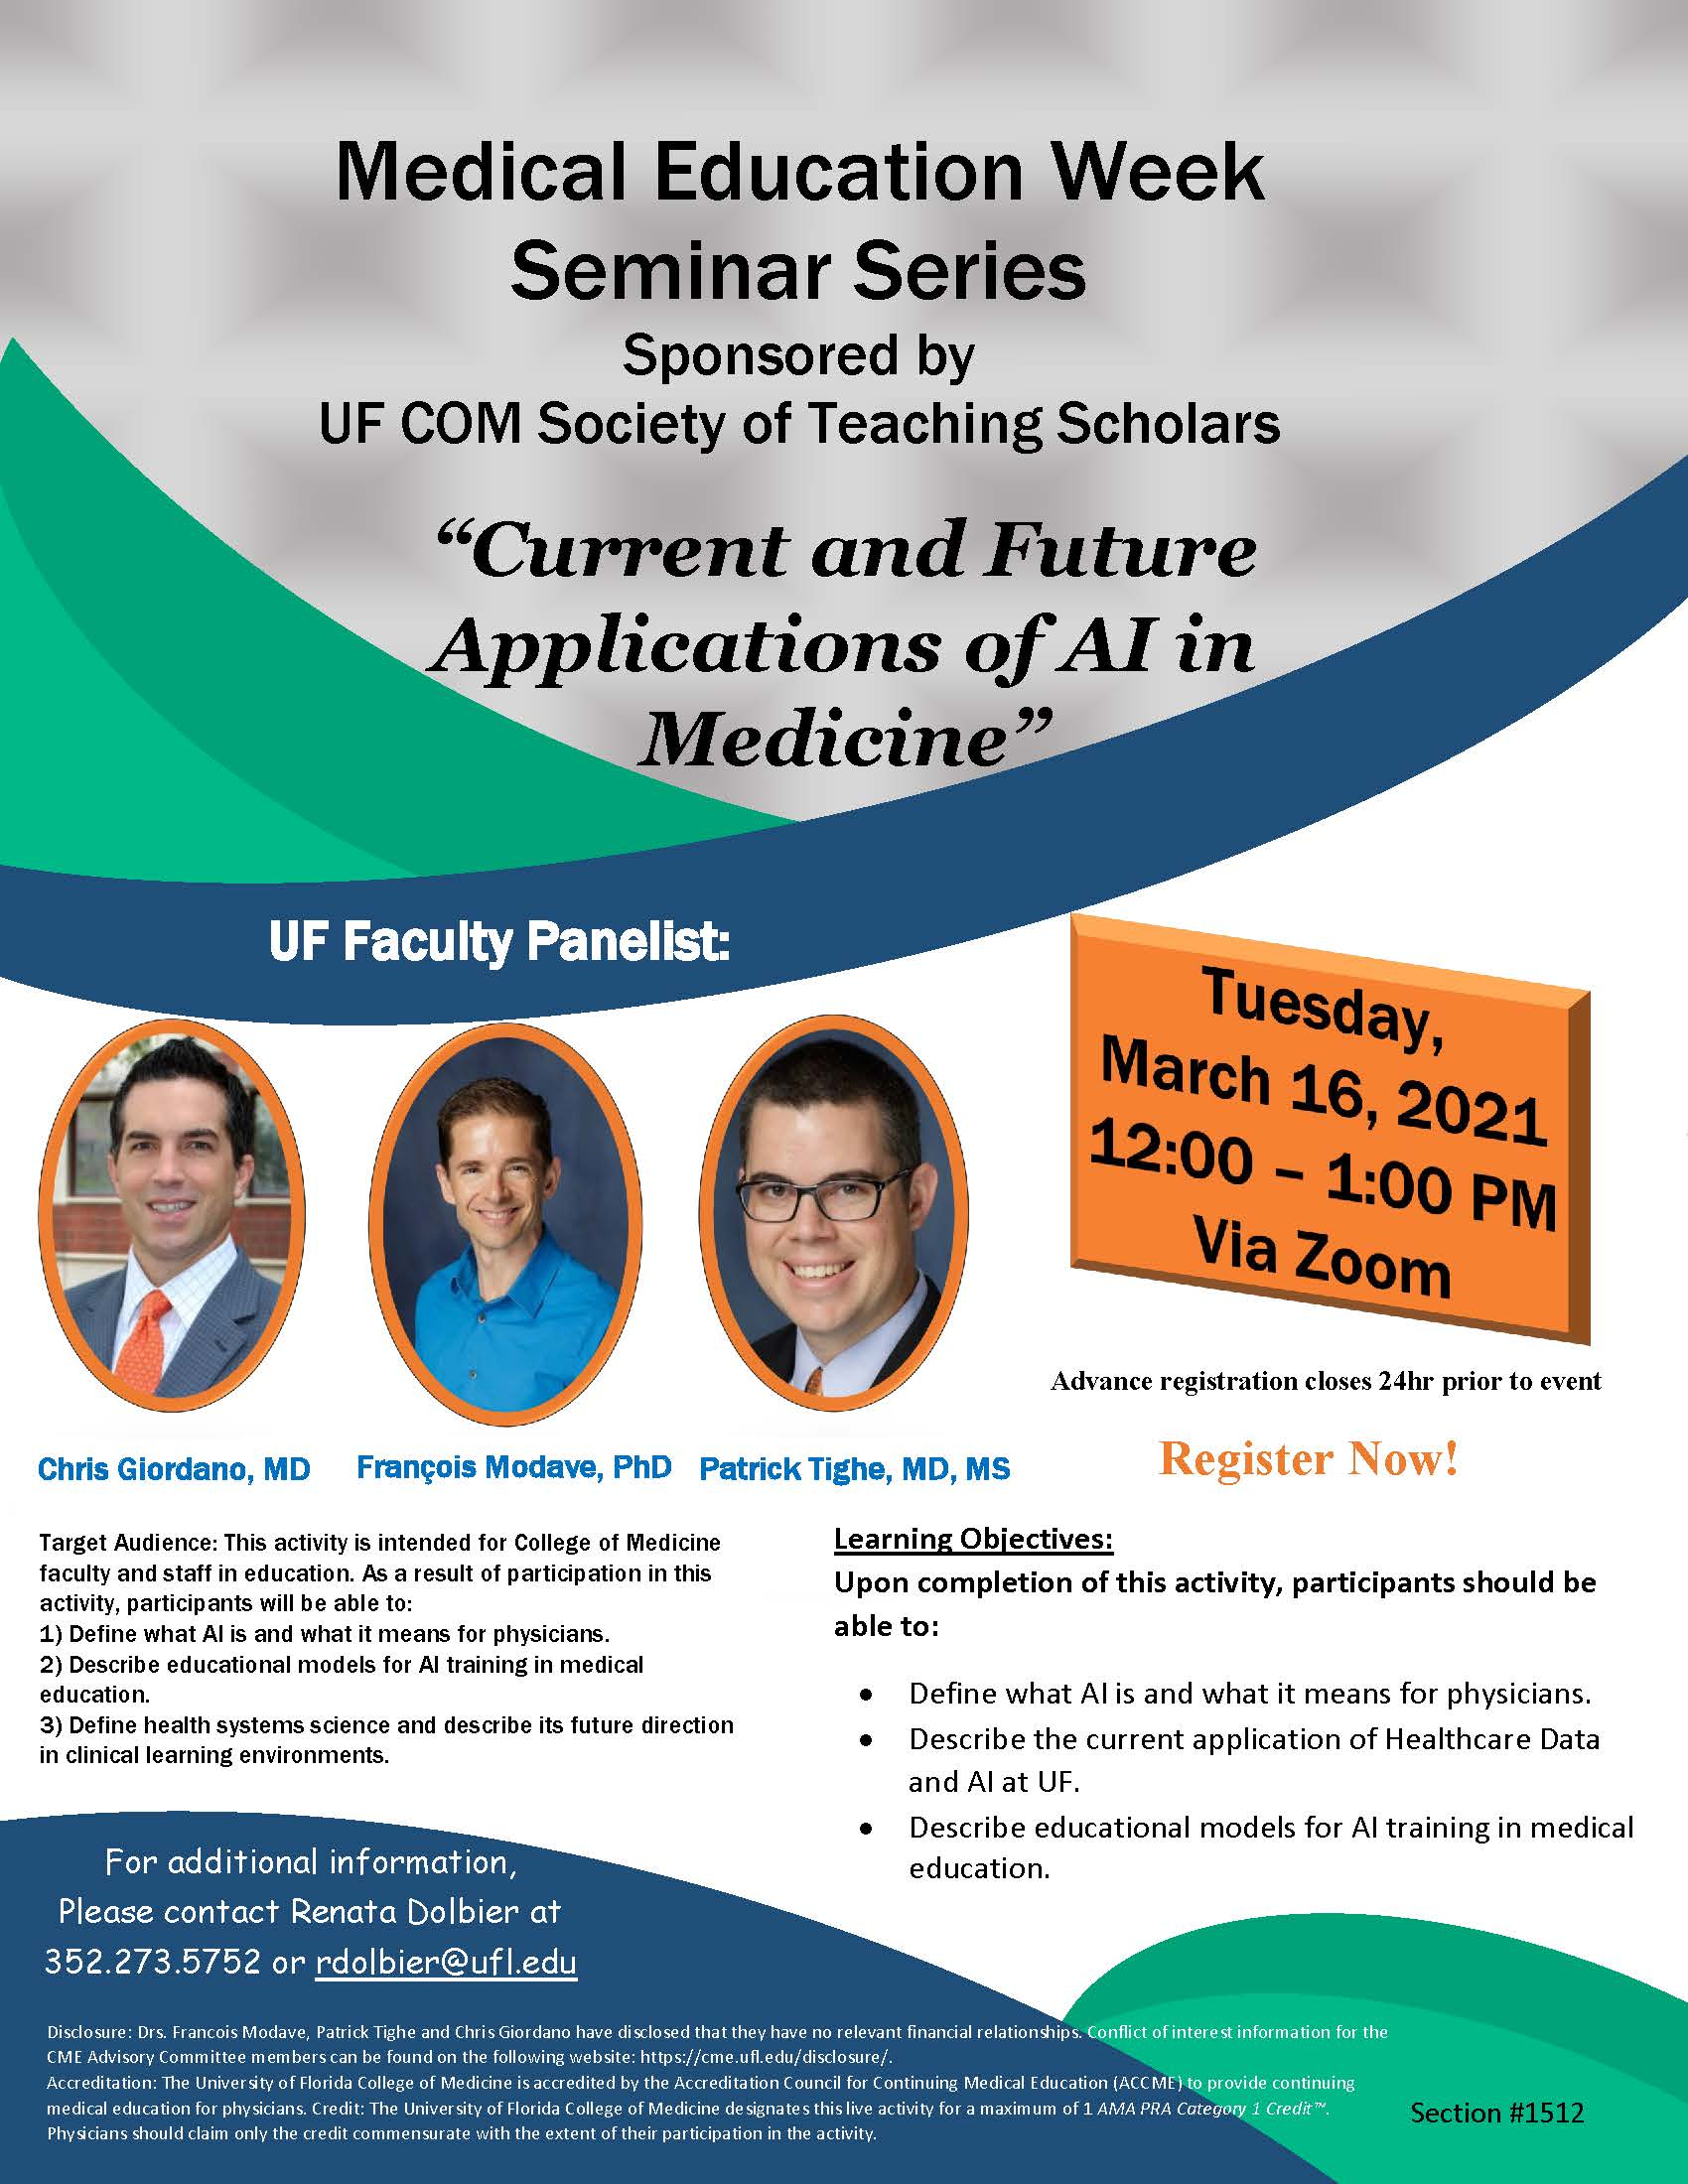 UF Faculty panelists